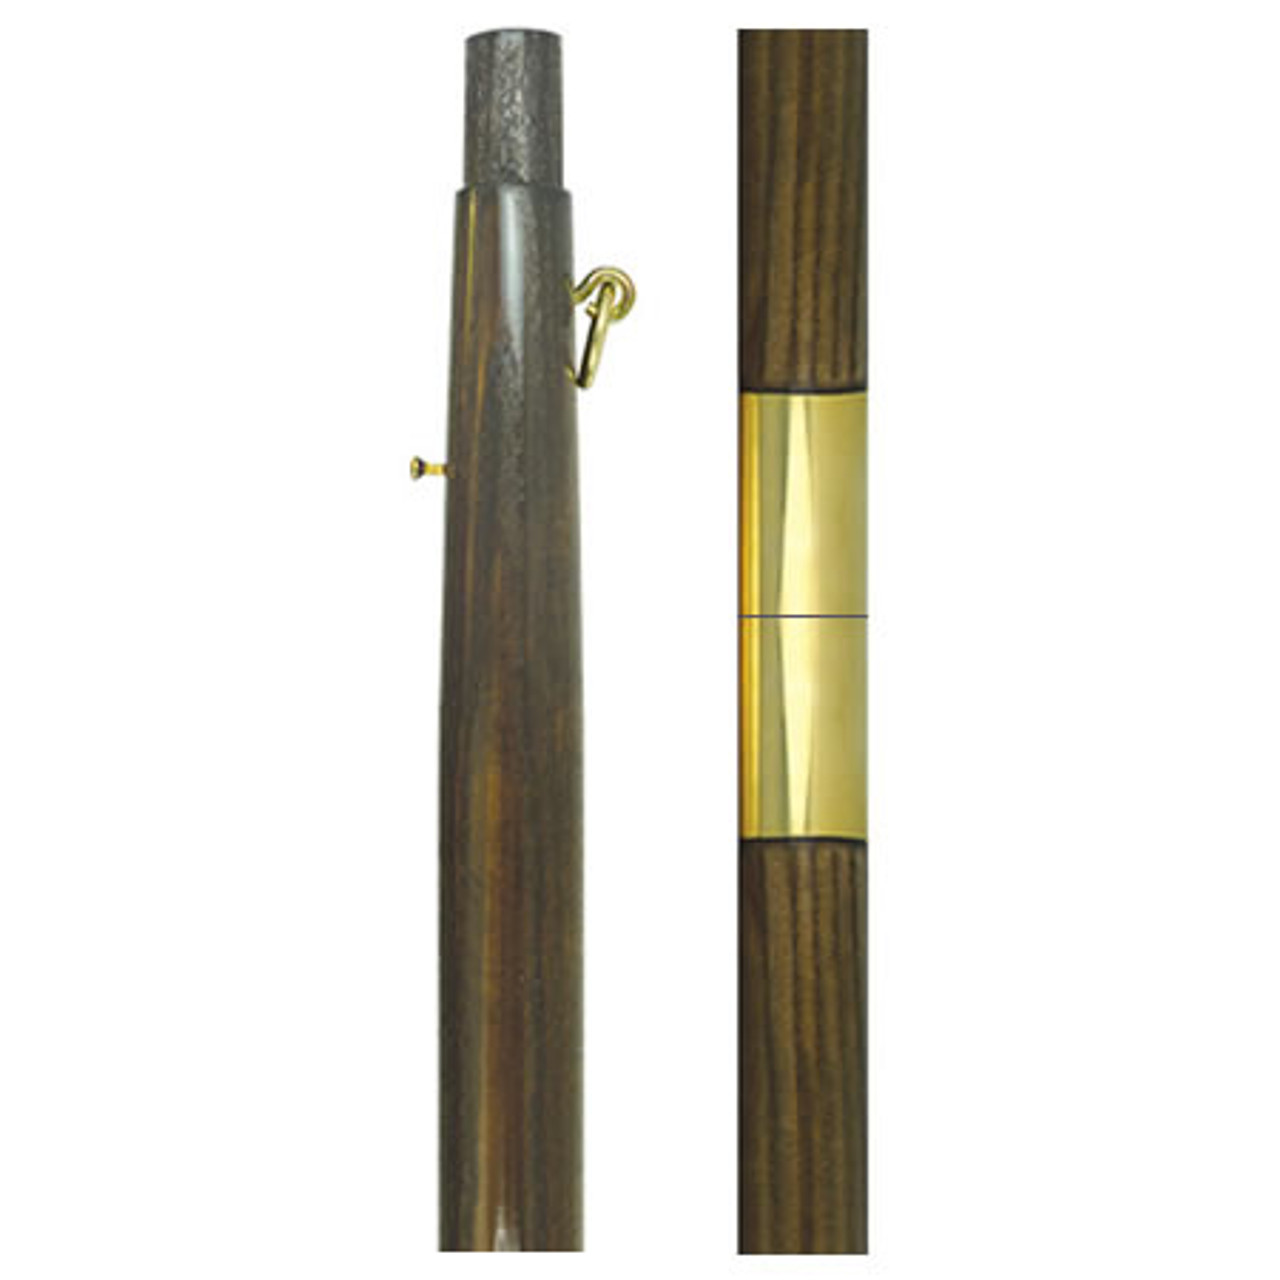 Dark Oak Wooden Indoor Poles Parade Poles